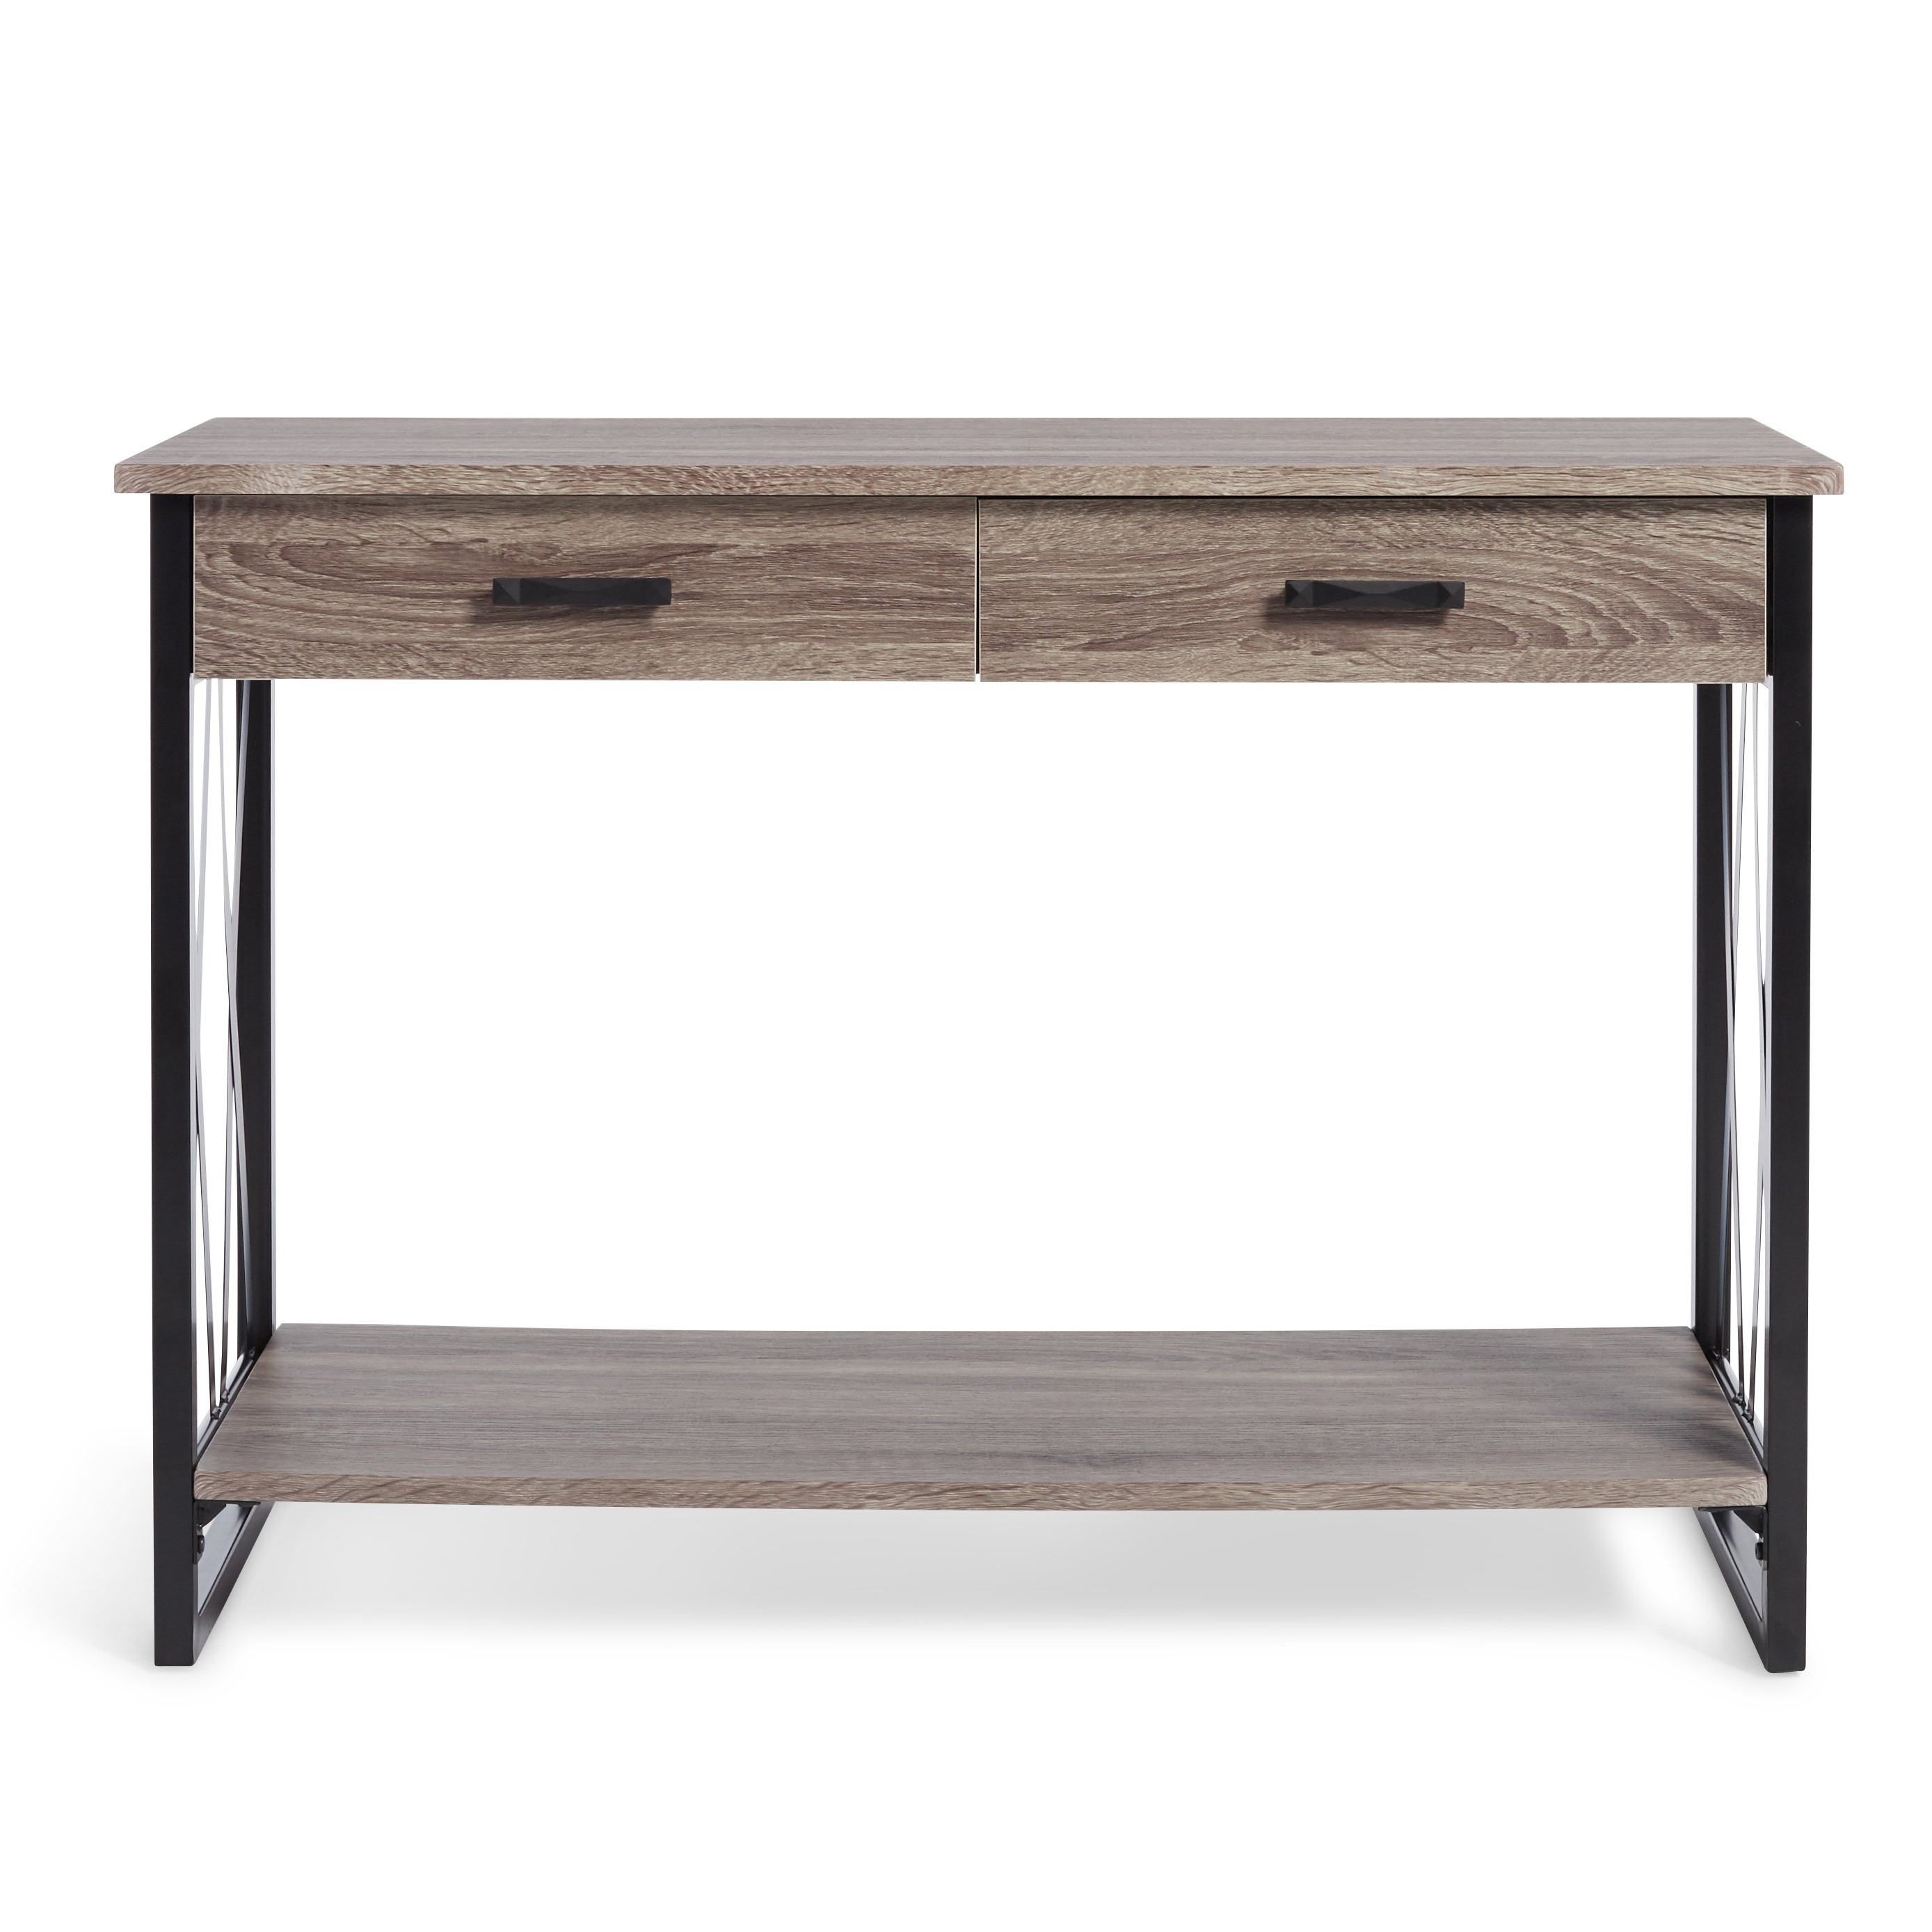 Shop Seneca Reclaimed Finish Sofa Table – Free Shipping Today For Well Known Mix Leather Imprint Metal Frame Console Tables (Gallery 8 of 20)